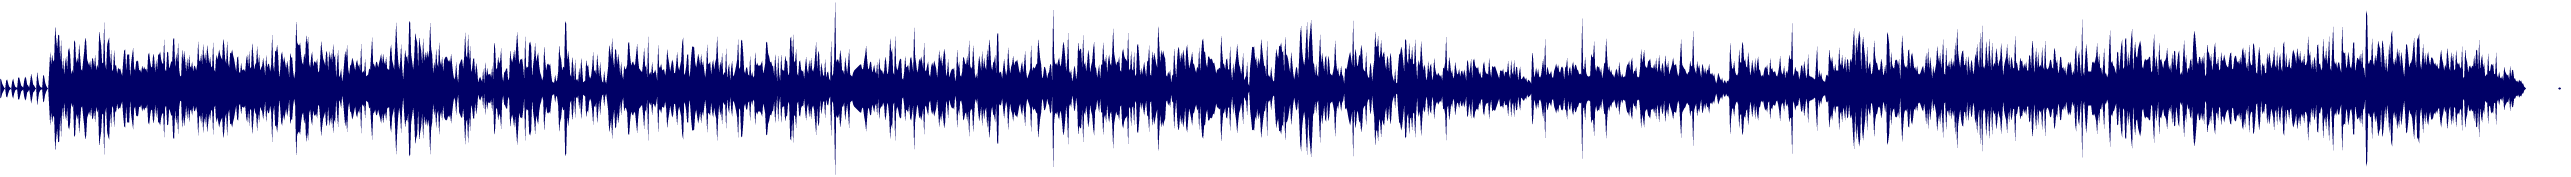 waveform of track #66707